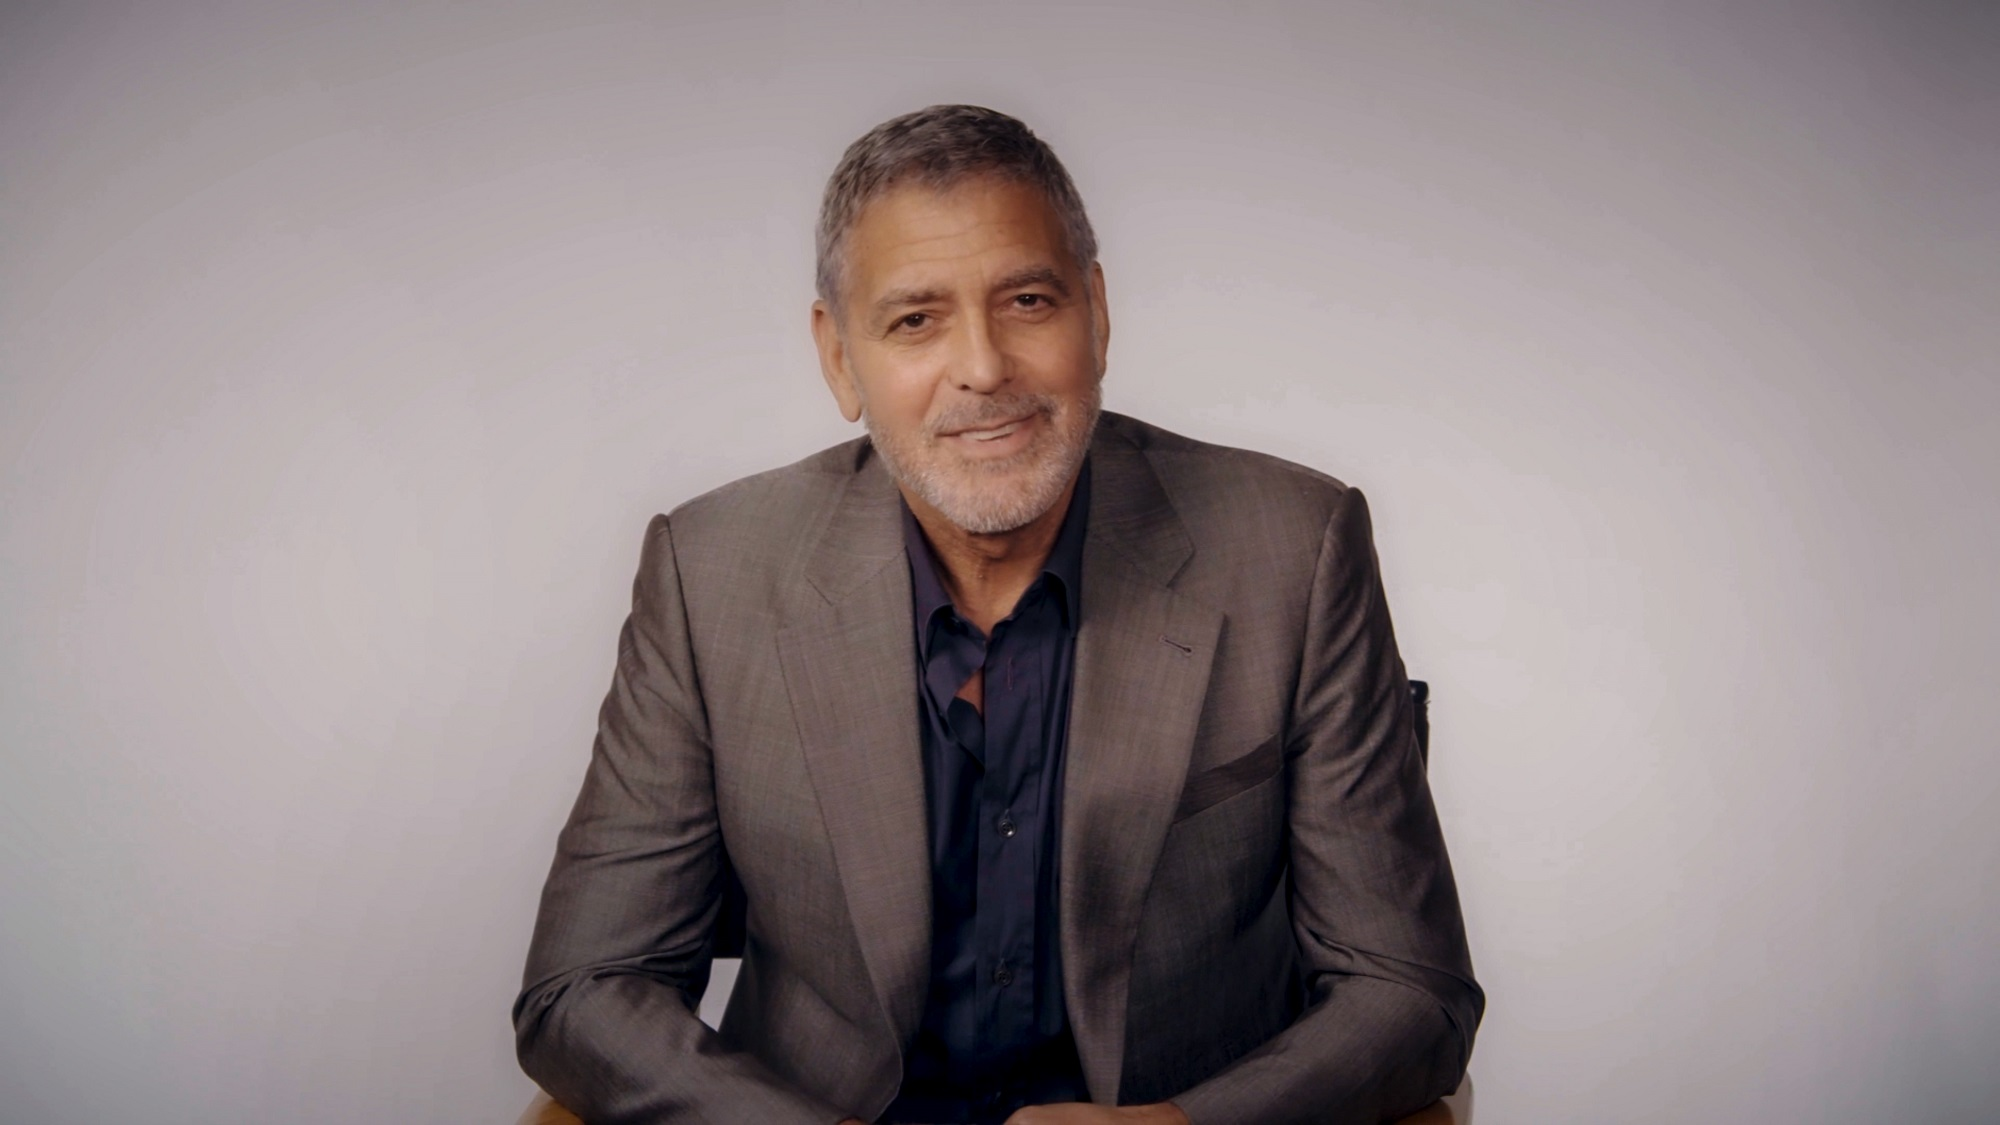 George Clooney recently starred in 'The Midnight Sky'